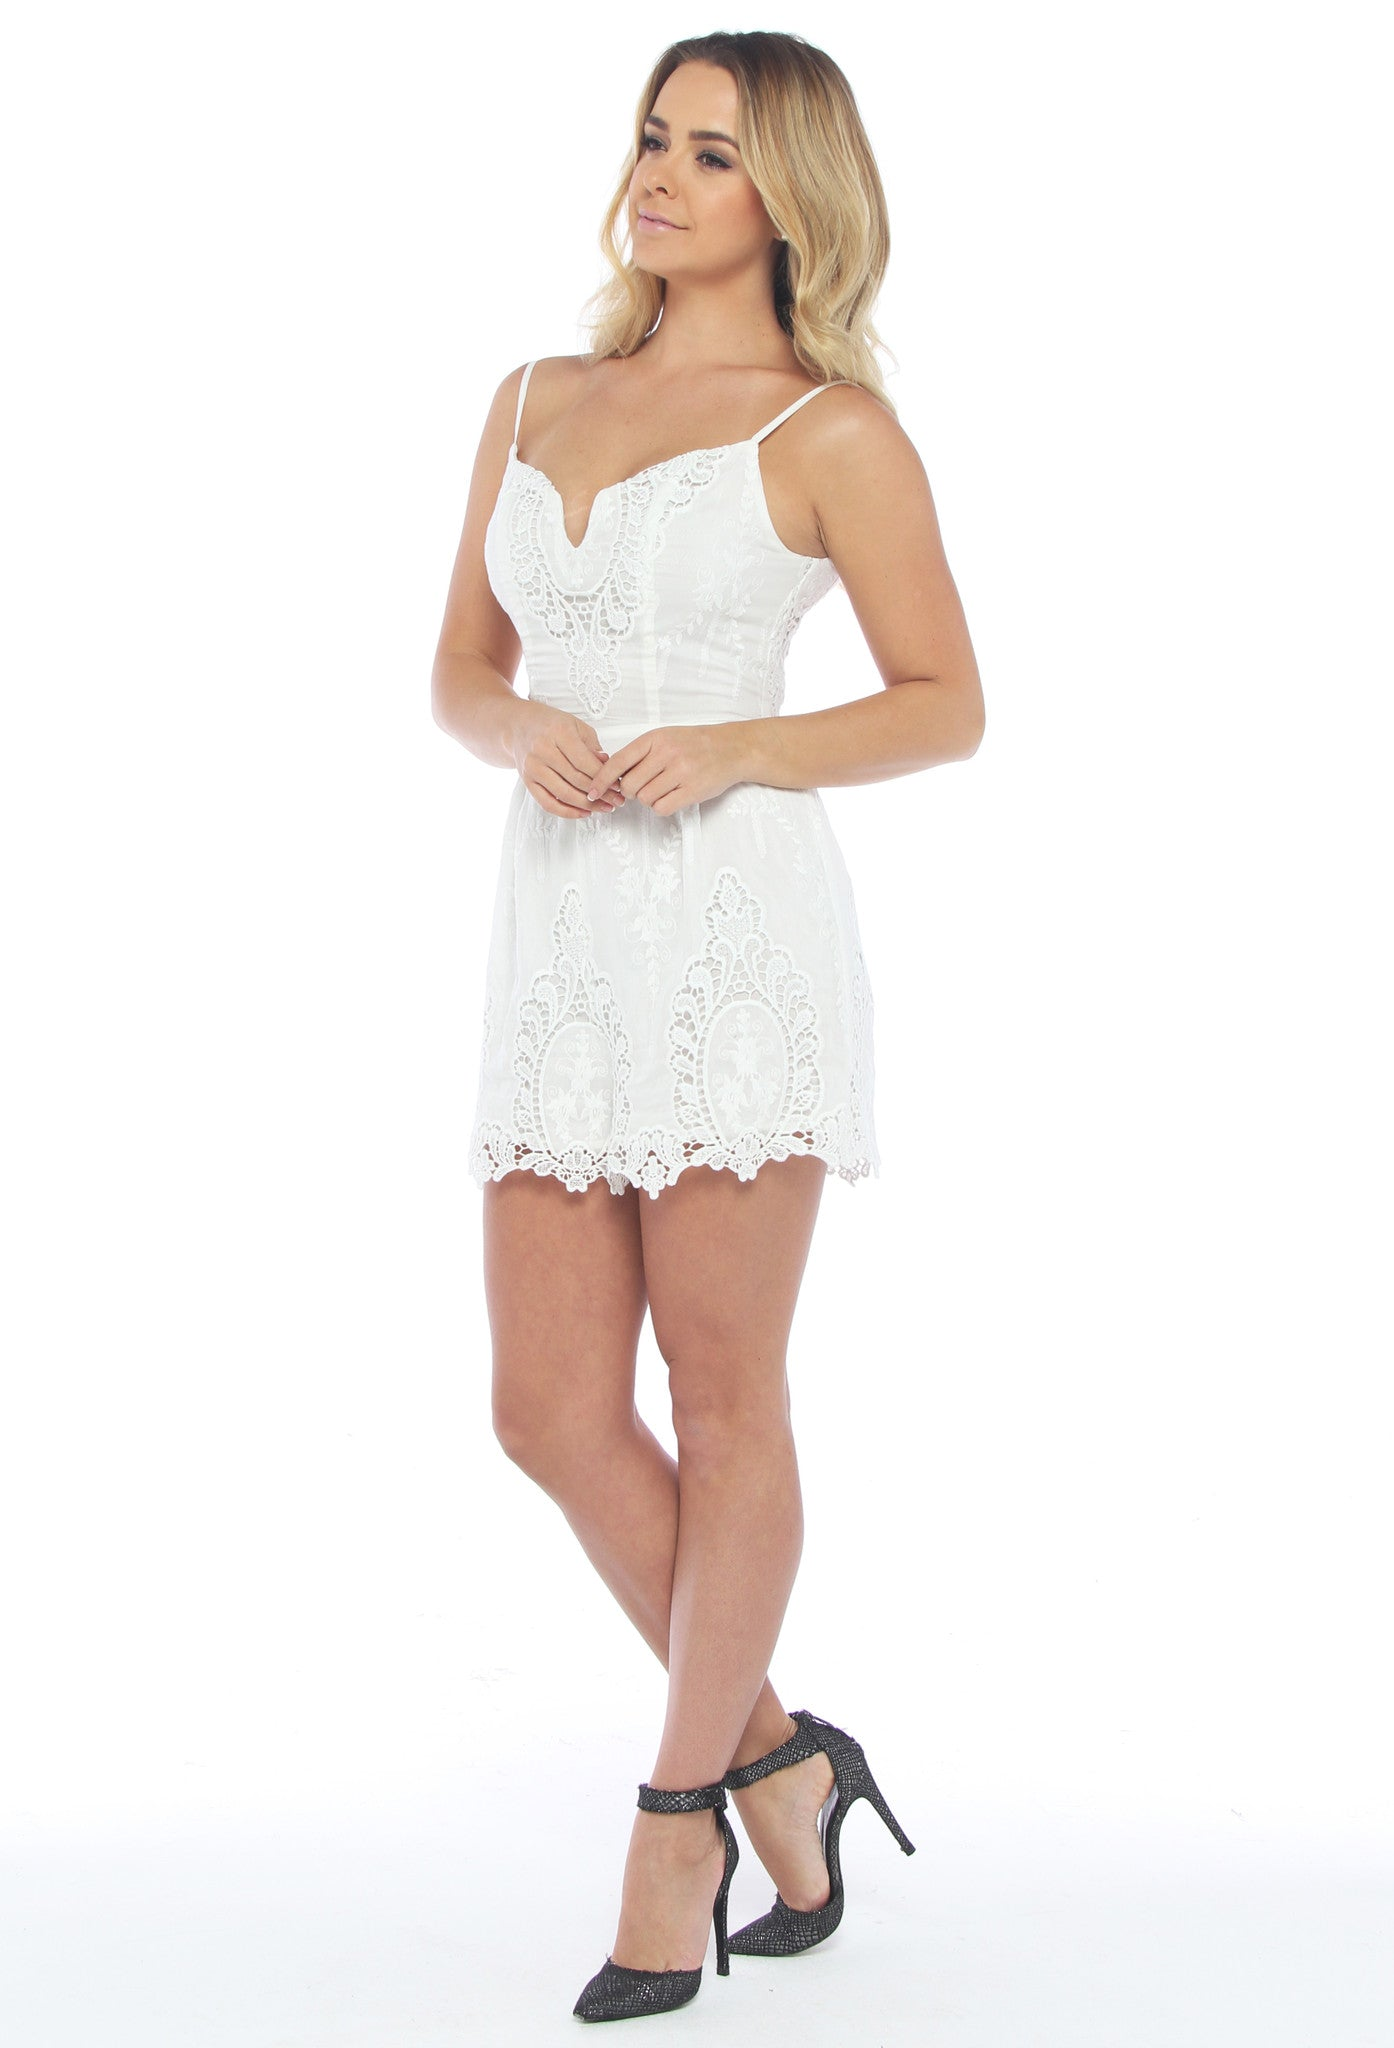 Ministry of Style Spindle Romper - THE OUT LANE